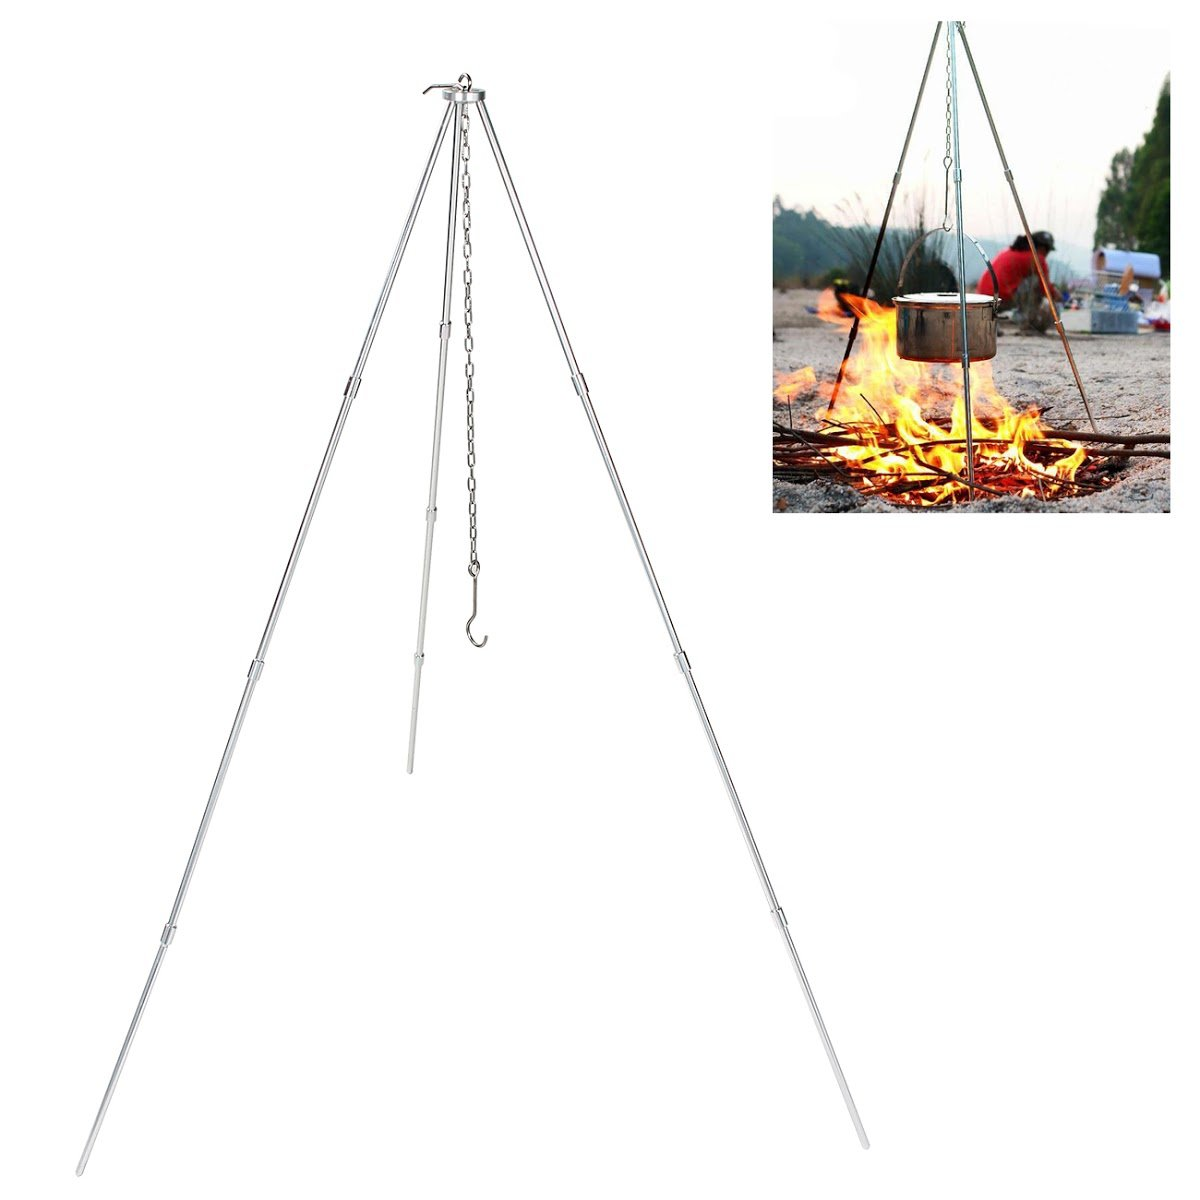 Donnagelia 106cm Height Camping Tripod with Adjustable Chain Portable Foldable for Outdoor BBQ Barbecue Campfire Cooking Hanging Pot